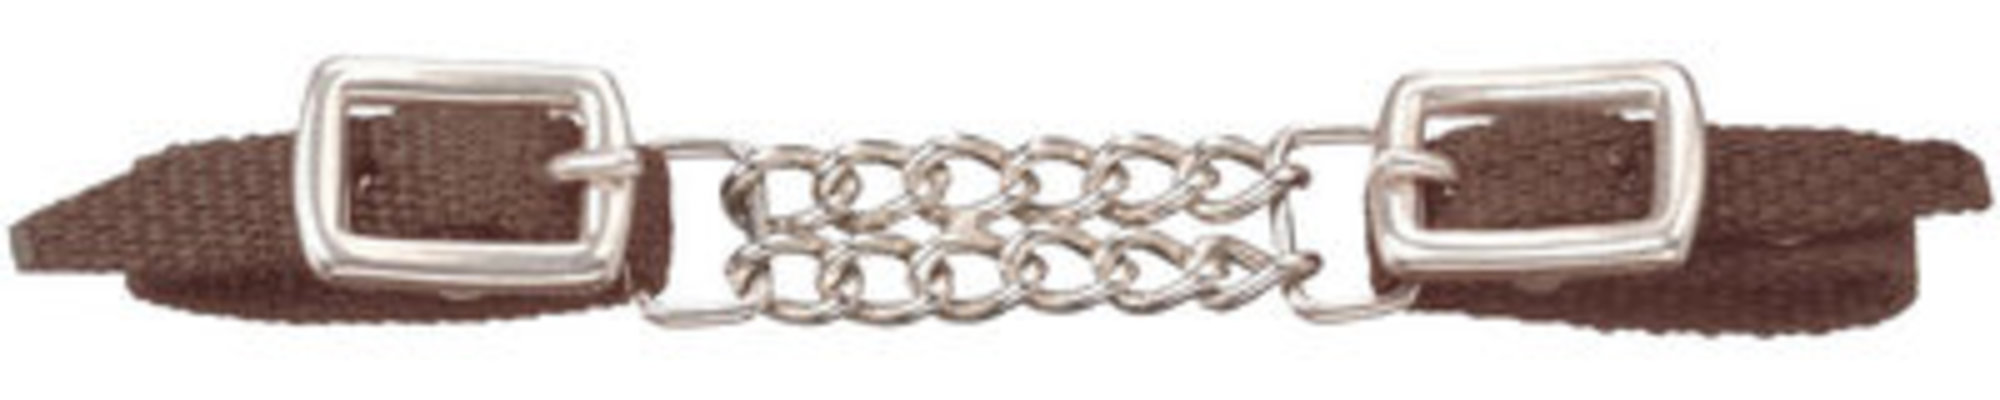 Miniature Nylon Curb Chain